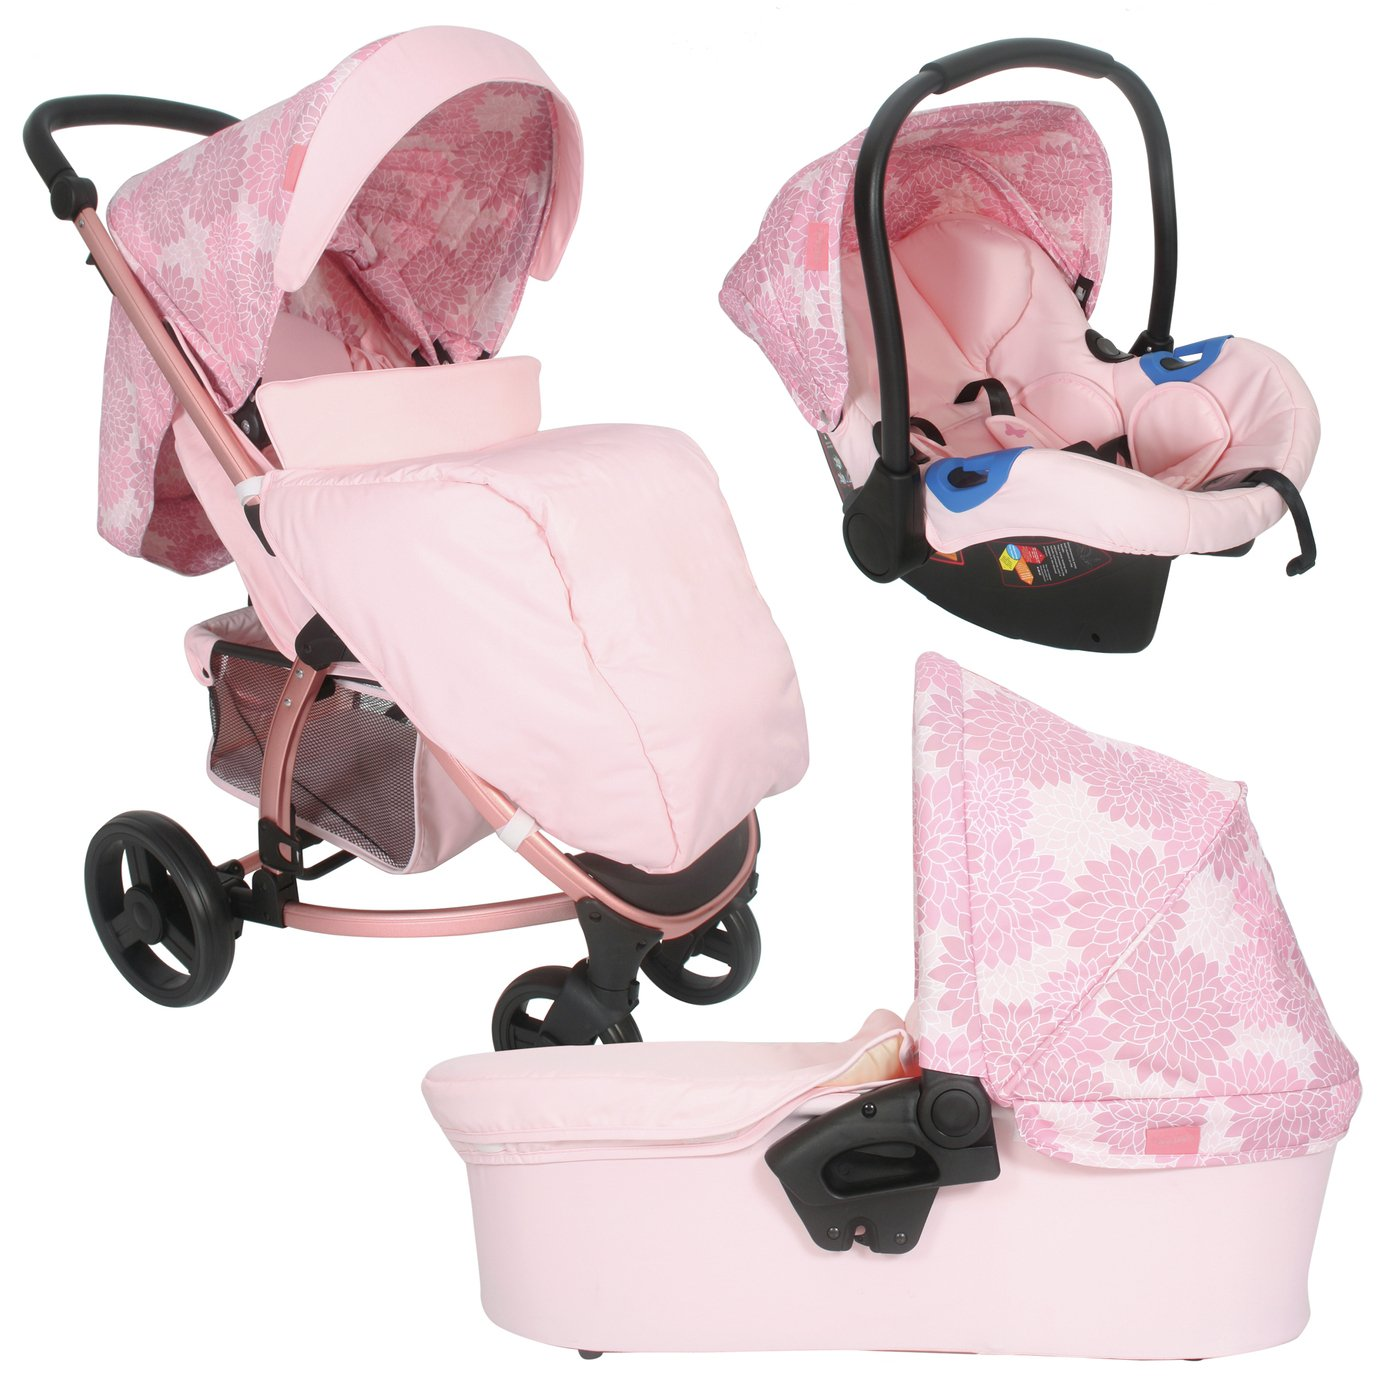 My Babiie Katie Piper MB200 Travel System - Rose Floral